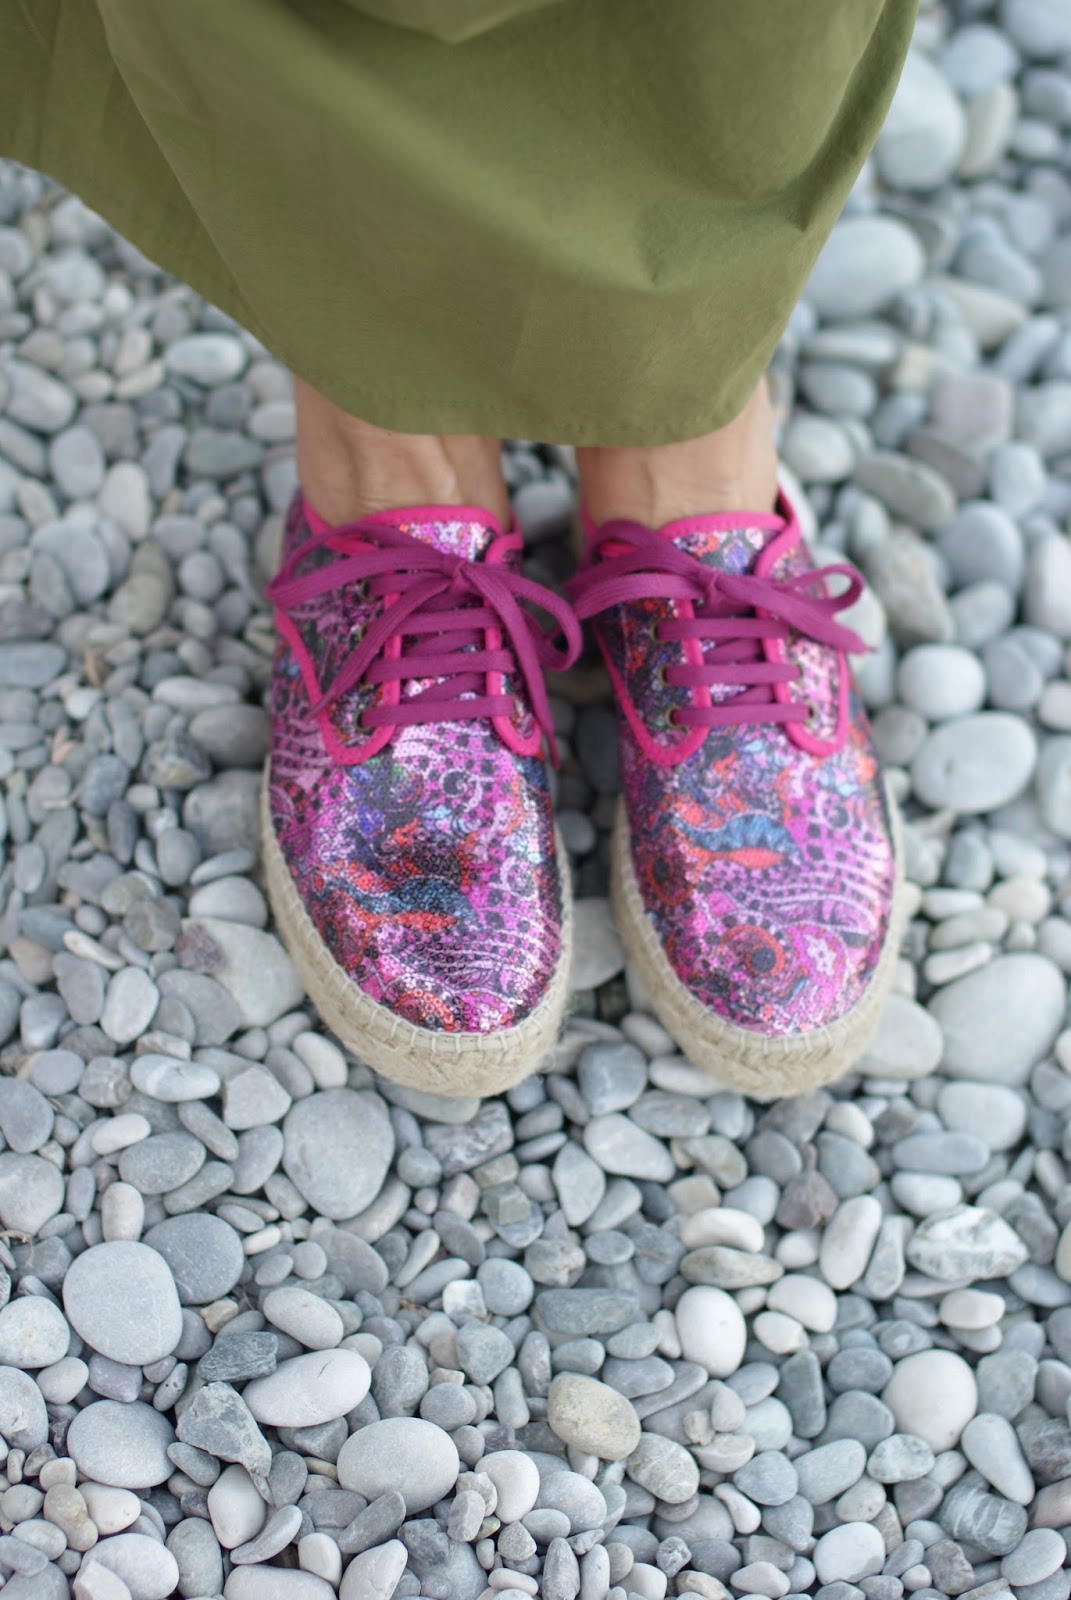 Natural World Eco fucsia lace up espadrillas eco friendly on Fashion and Cookies fashion blog, fashion blogger style